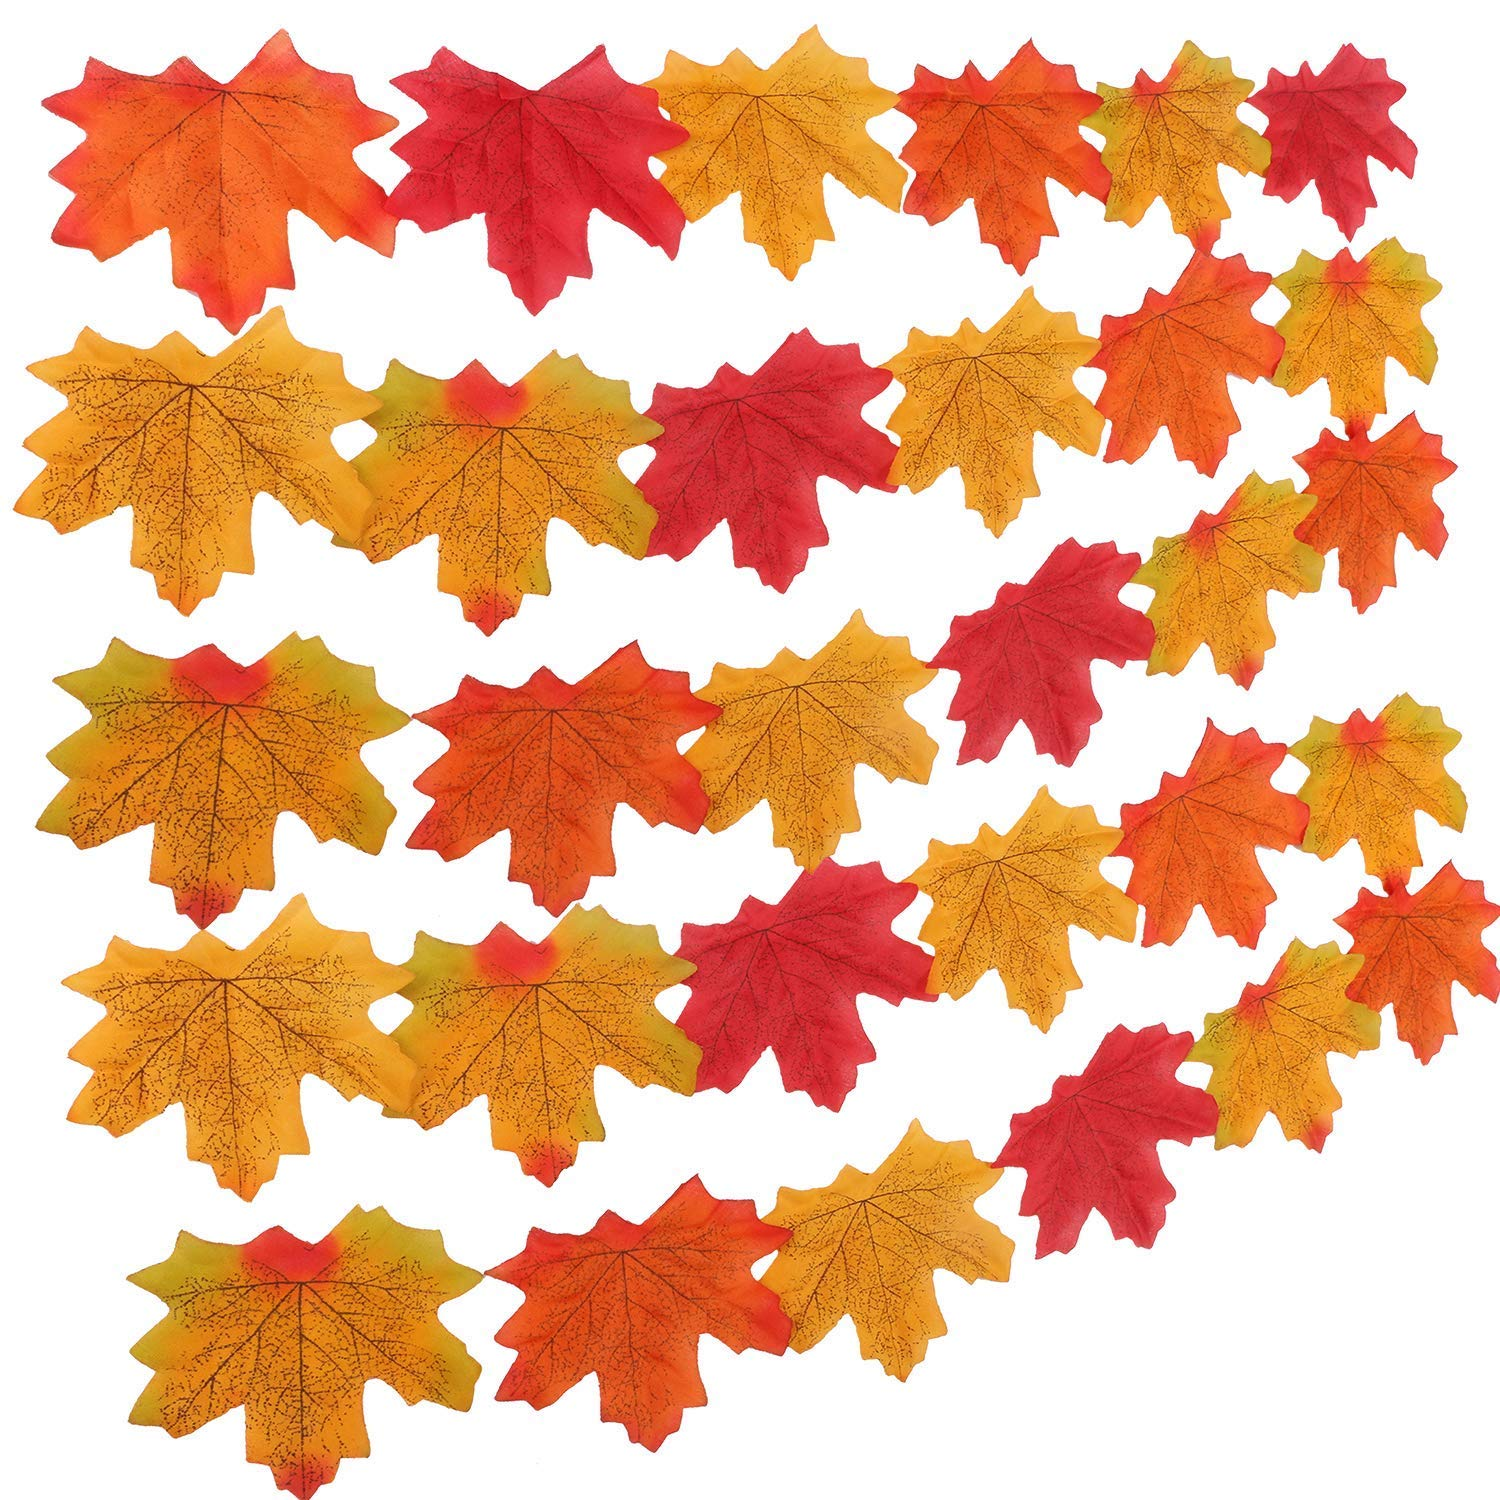 GiBot 400 Pcs Artificial Maple Leaves Fall Leaves Silk Leaves Multiple Colour Simulation Faux Autumn Leaves Perfect Natural Autumn Decorations,Suitable for Thanksgiving Decor